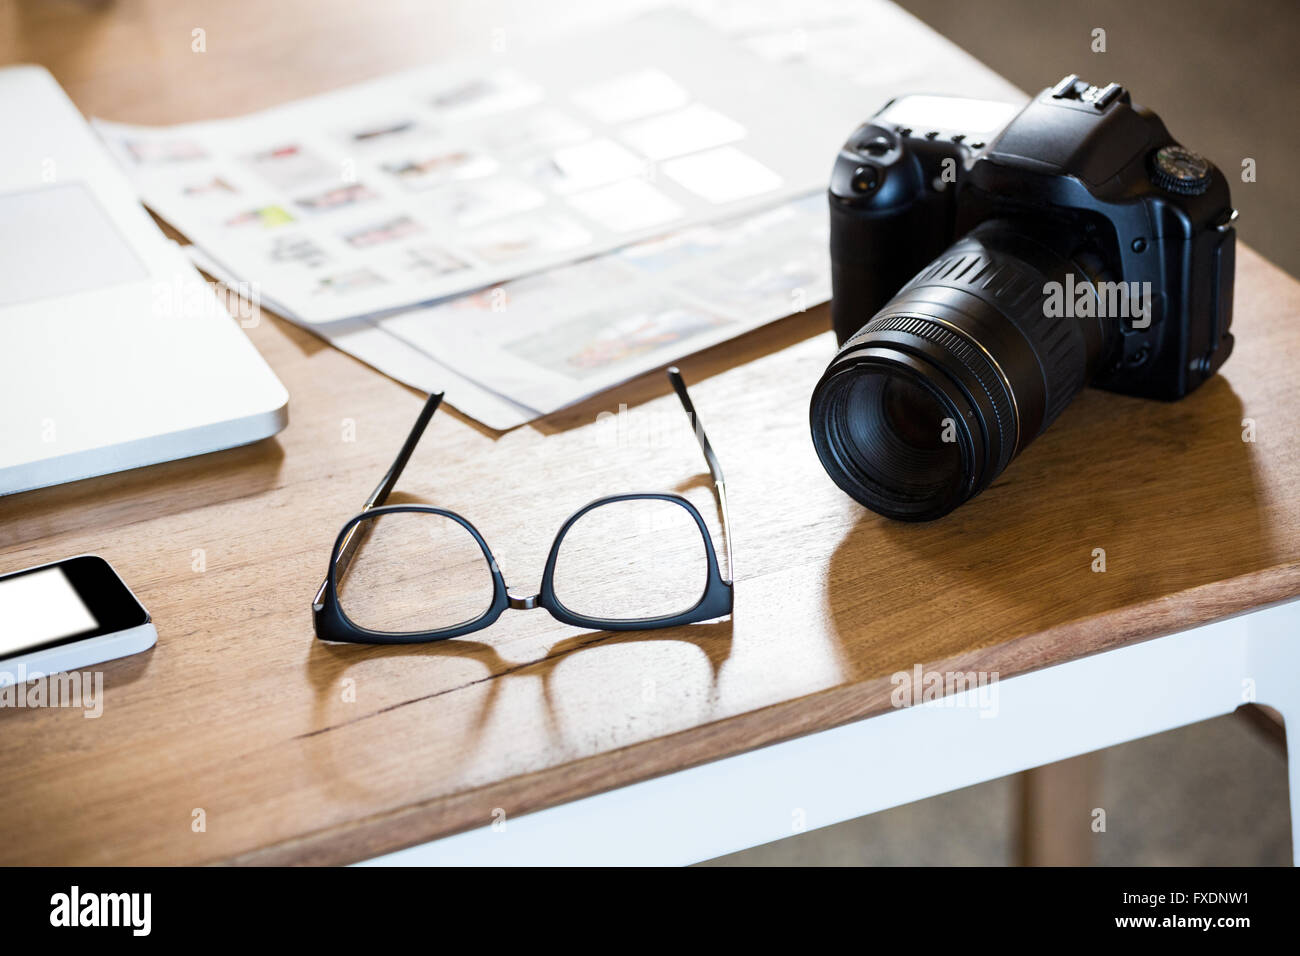 Mobile phone, spectacle and camera on desk - Stock Image